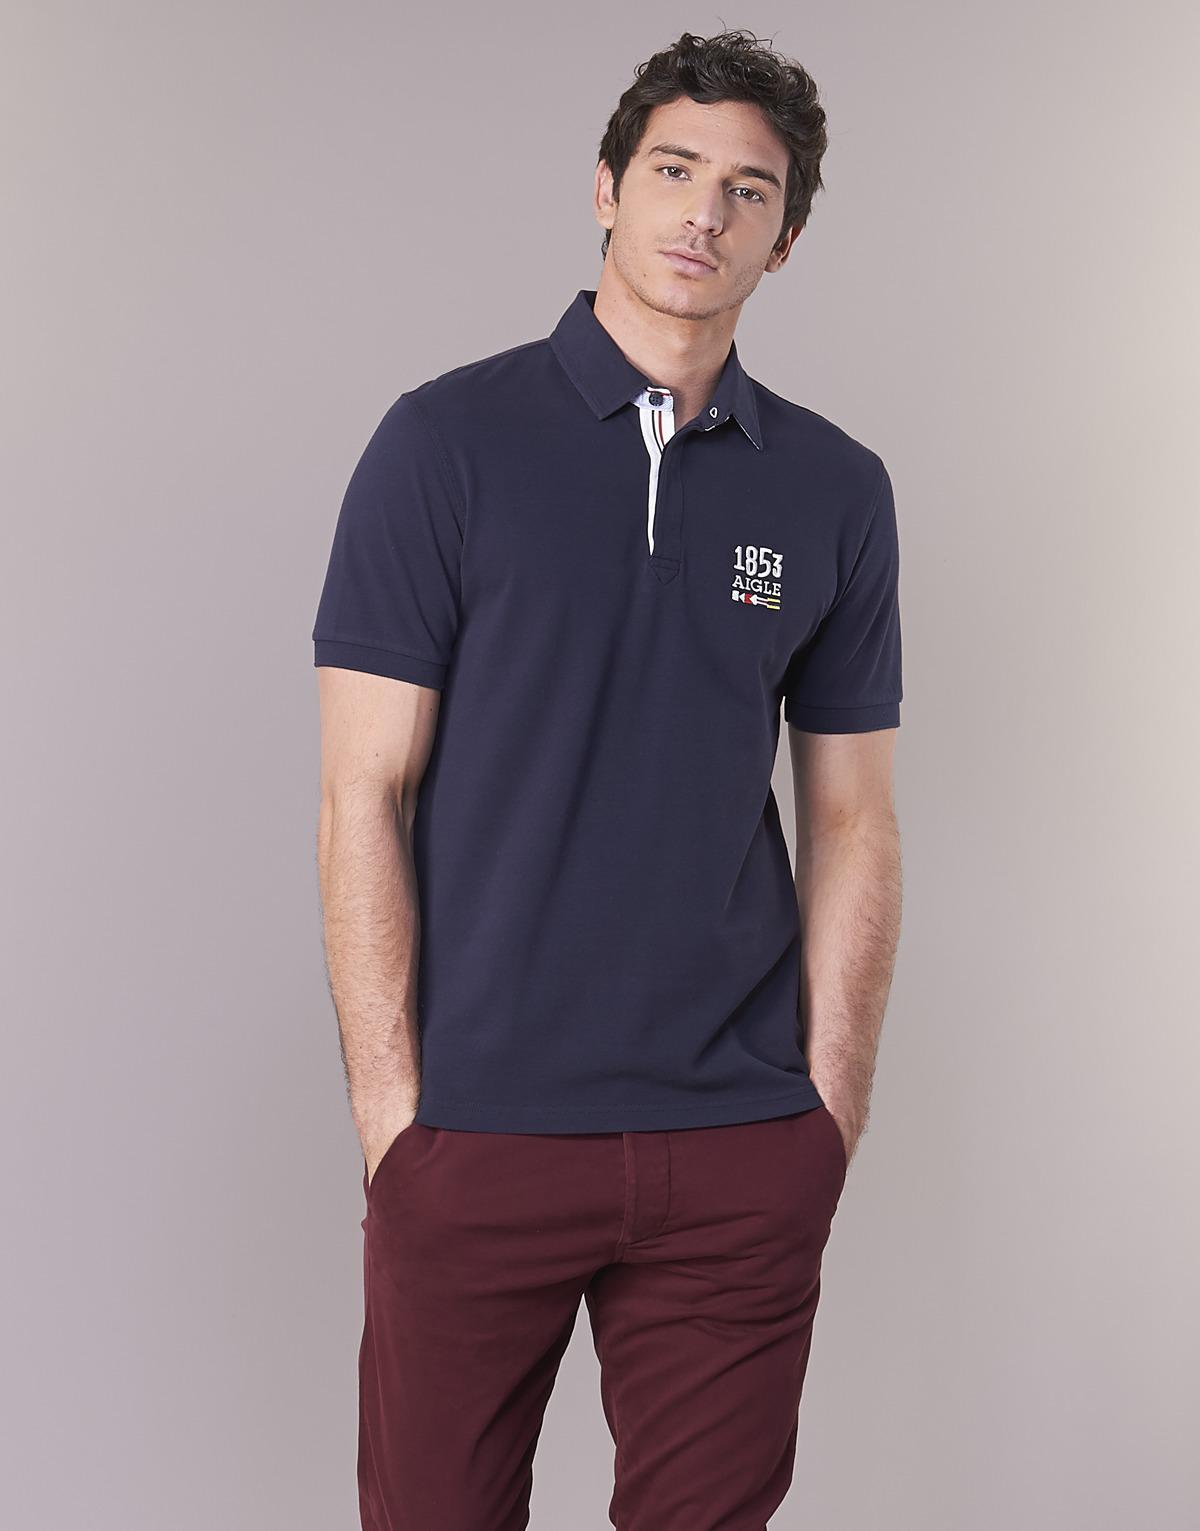 Stairsea rouge Polo homme AIGLE